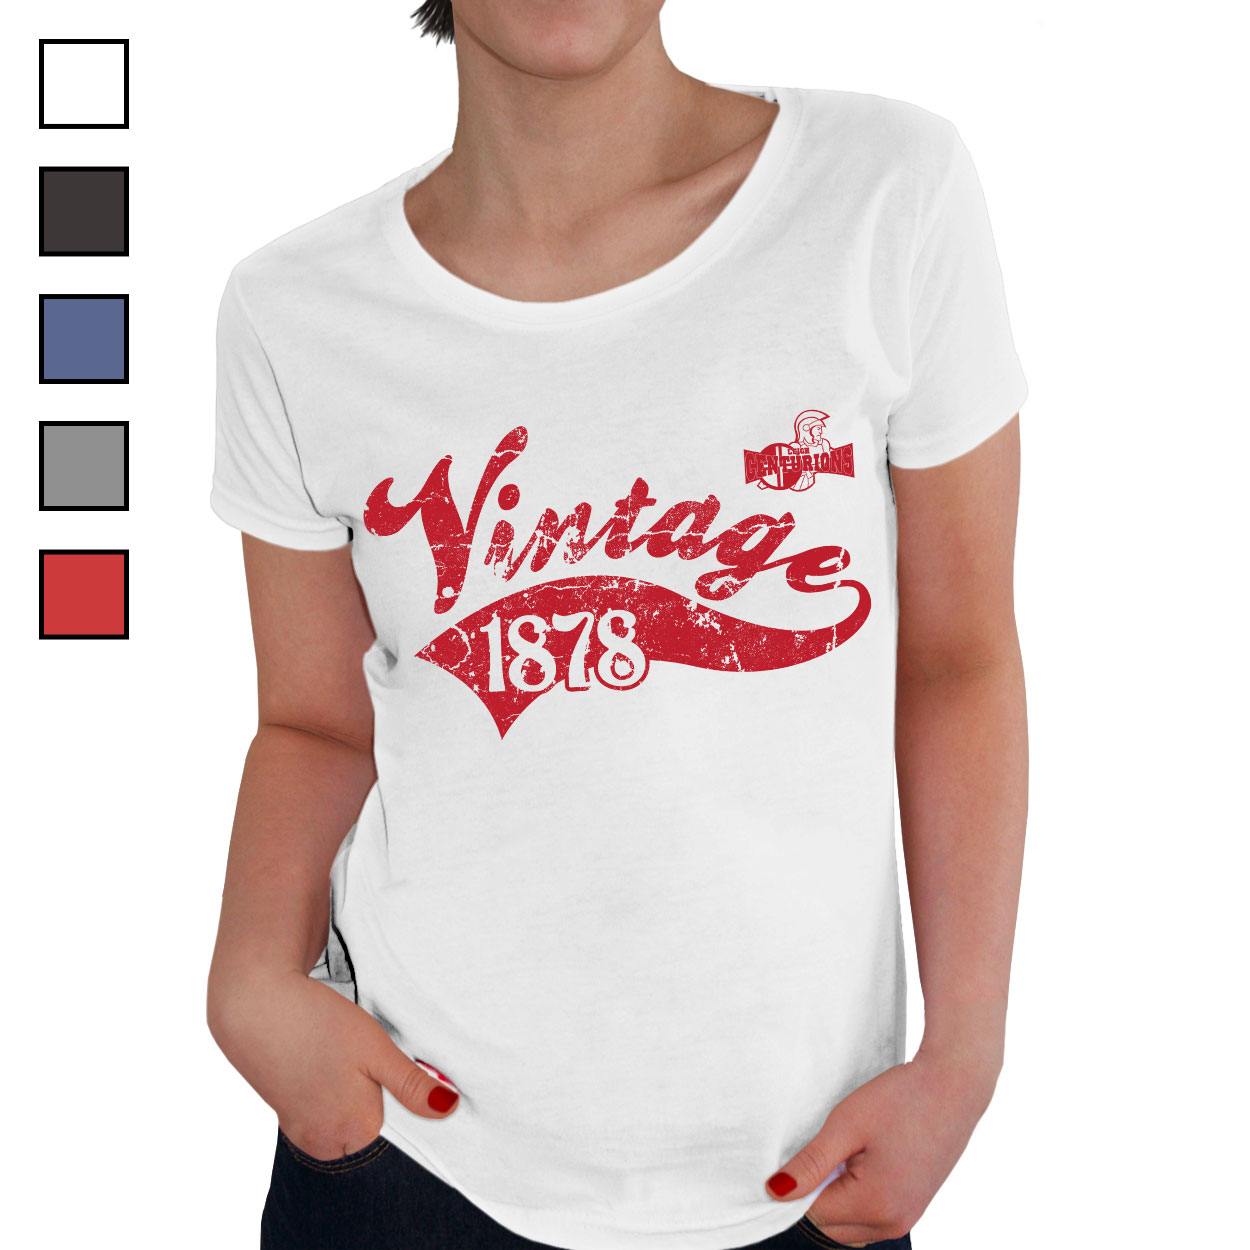 Leigh Centurions Ladies Vintage T-Shirt